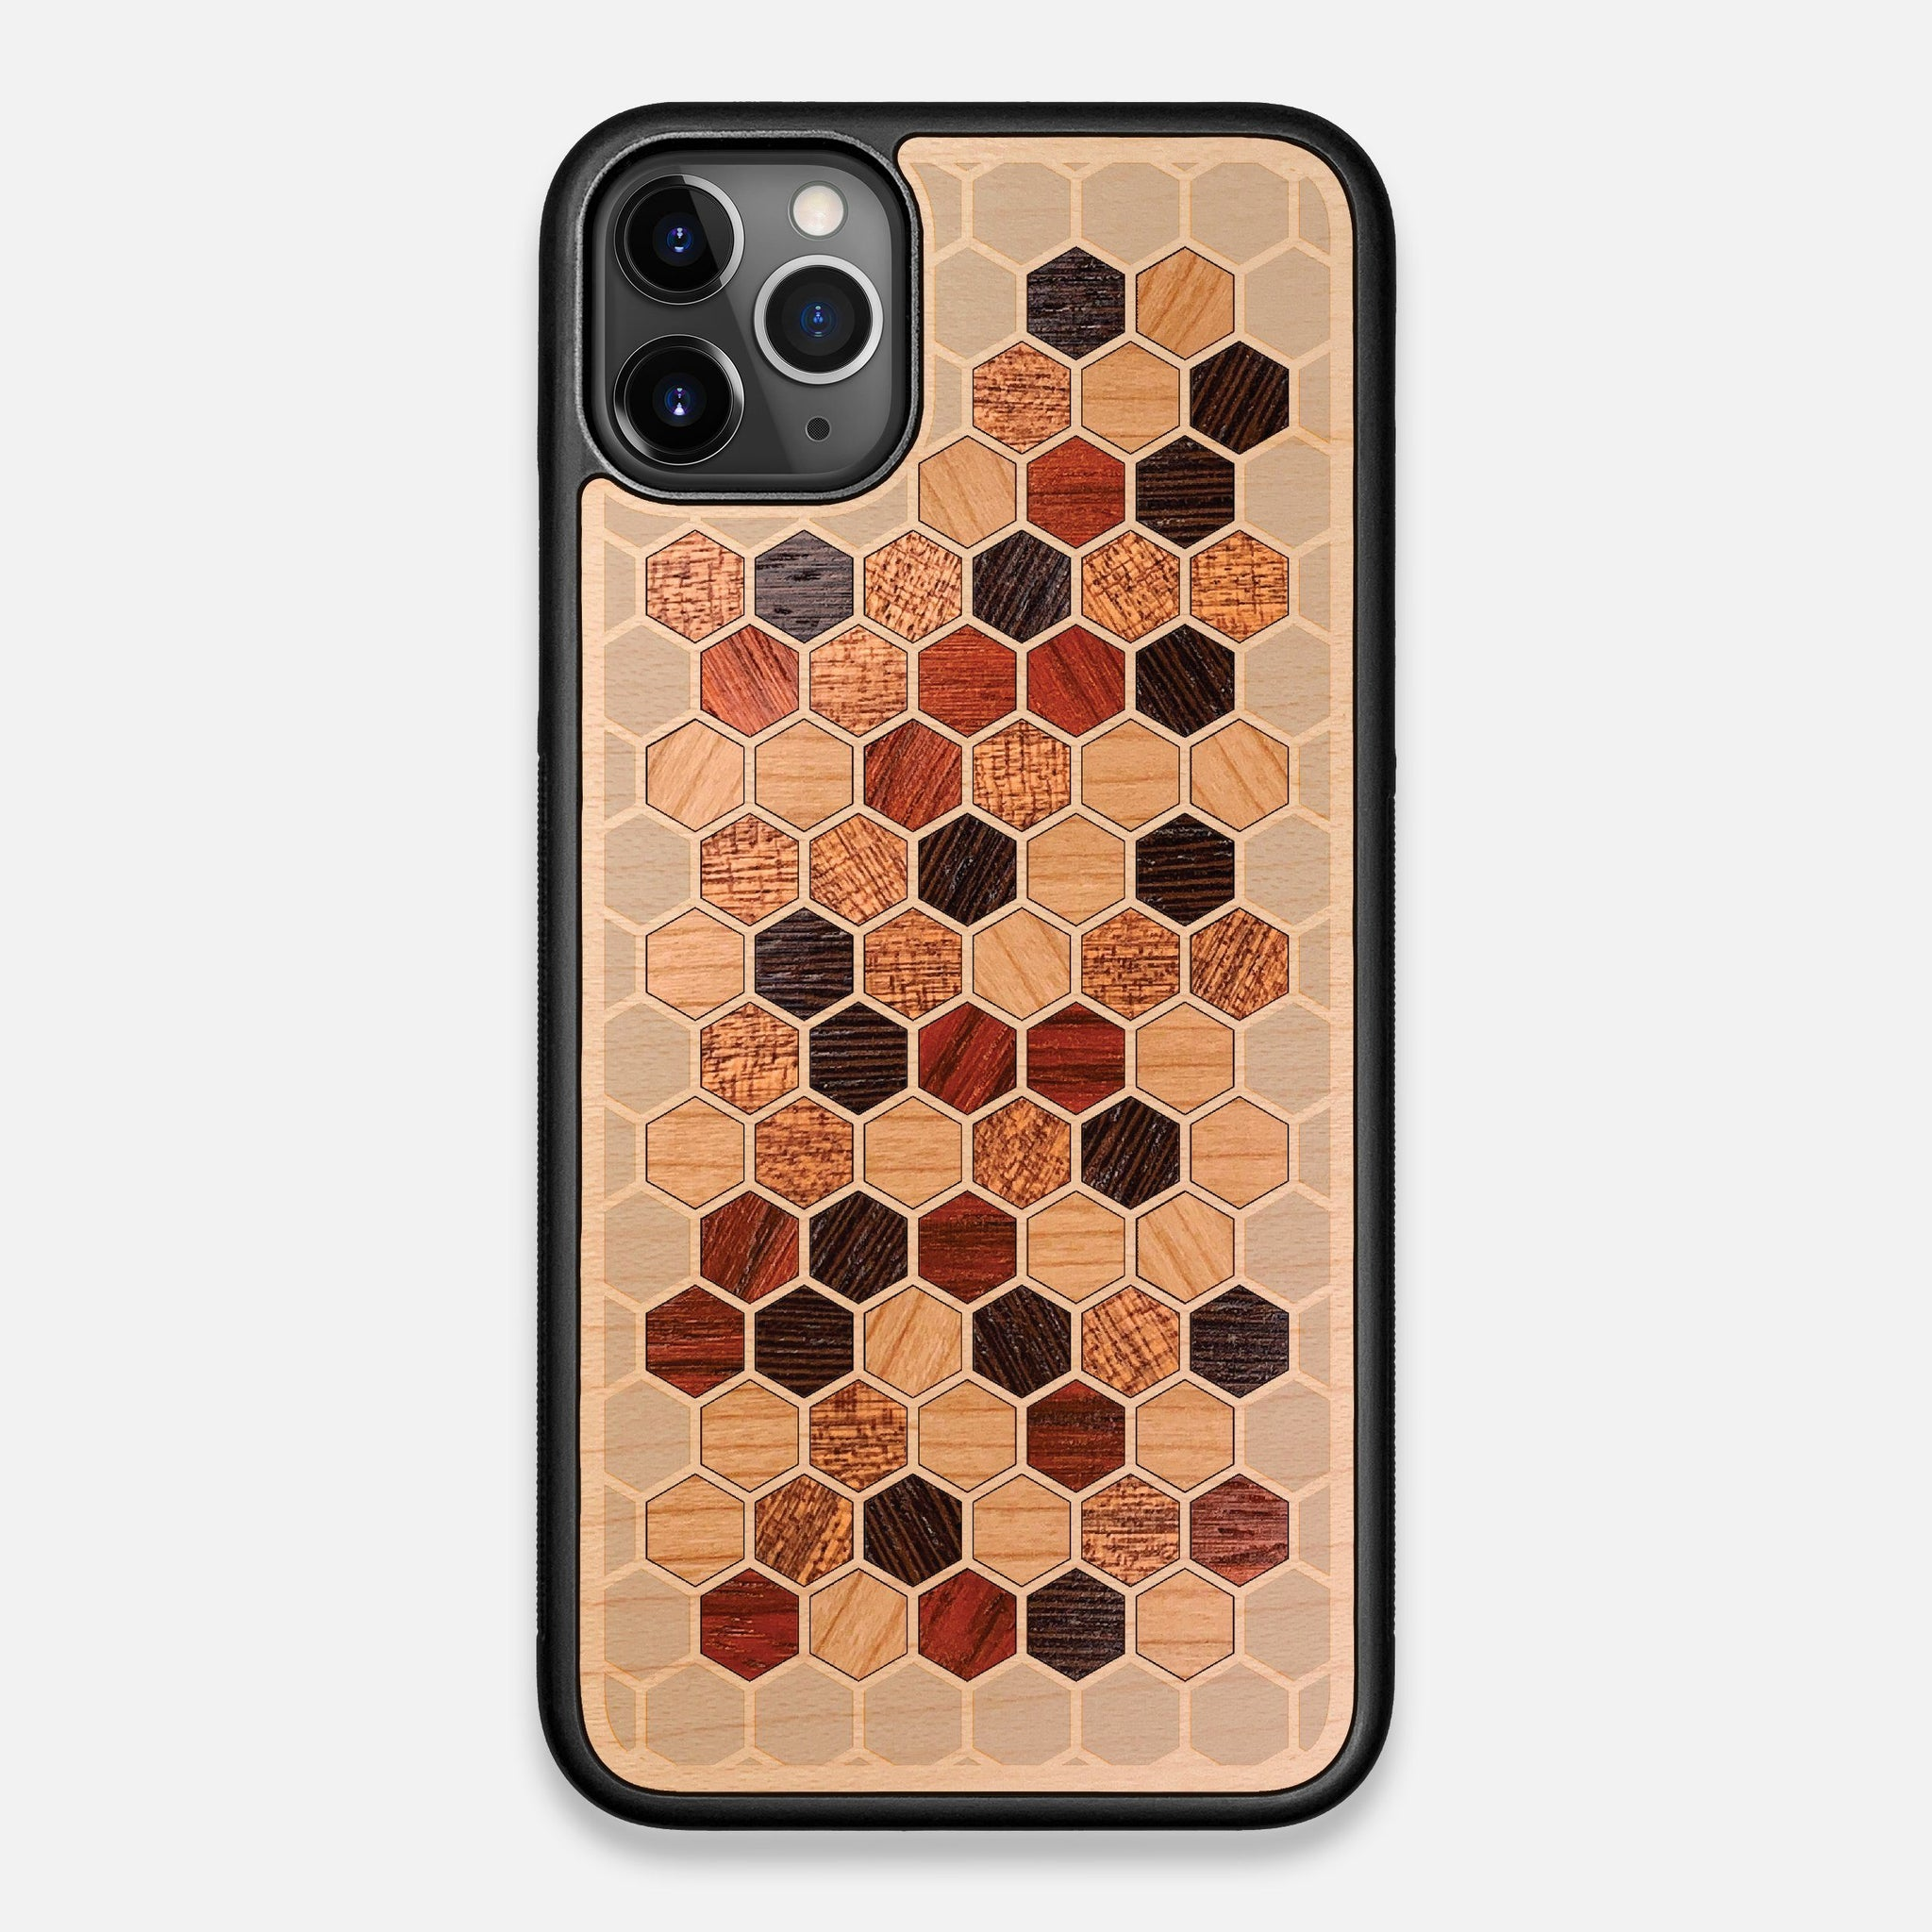 Front view of the Cellular Maple Wood iPhone 11 Pro Max Case by Keyway Designs